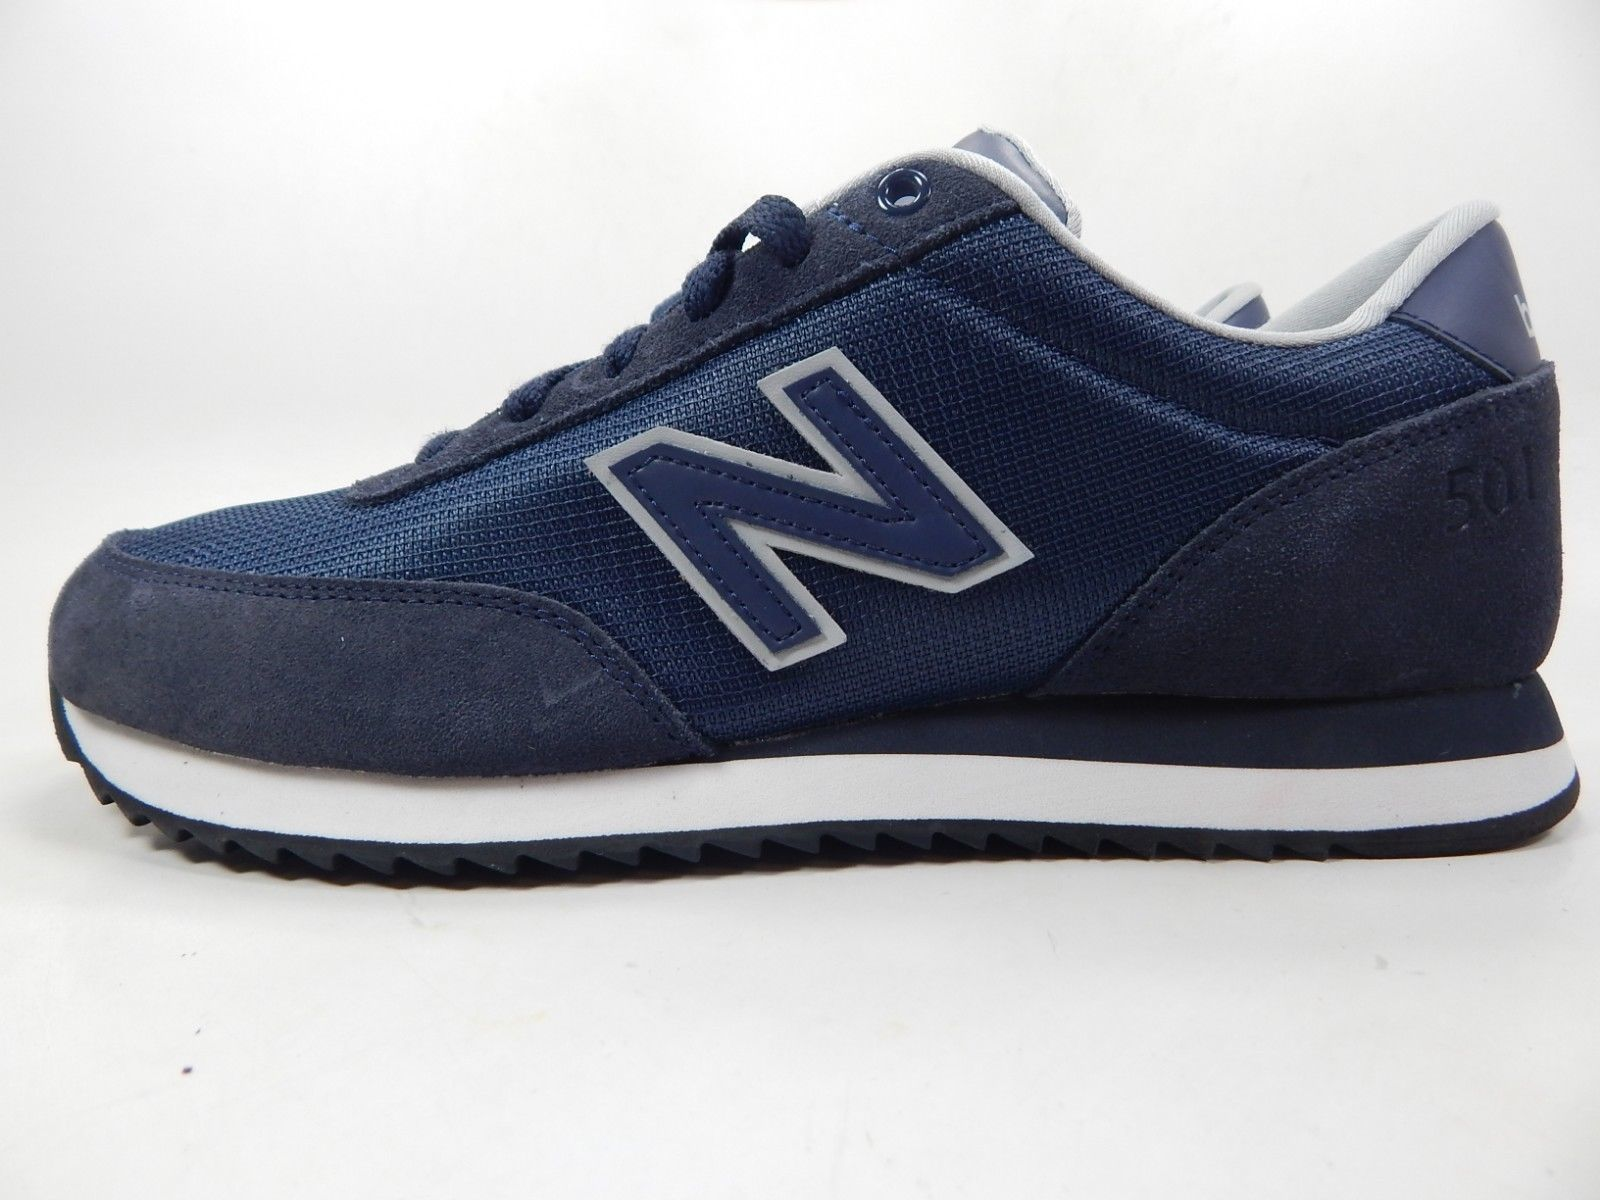 New Balance 501 Textile Size 9.5 M (D) EU 43 Men's Running Shoes MZ501CRA